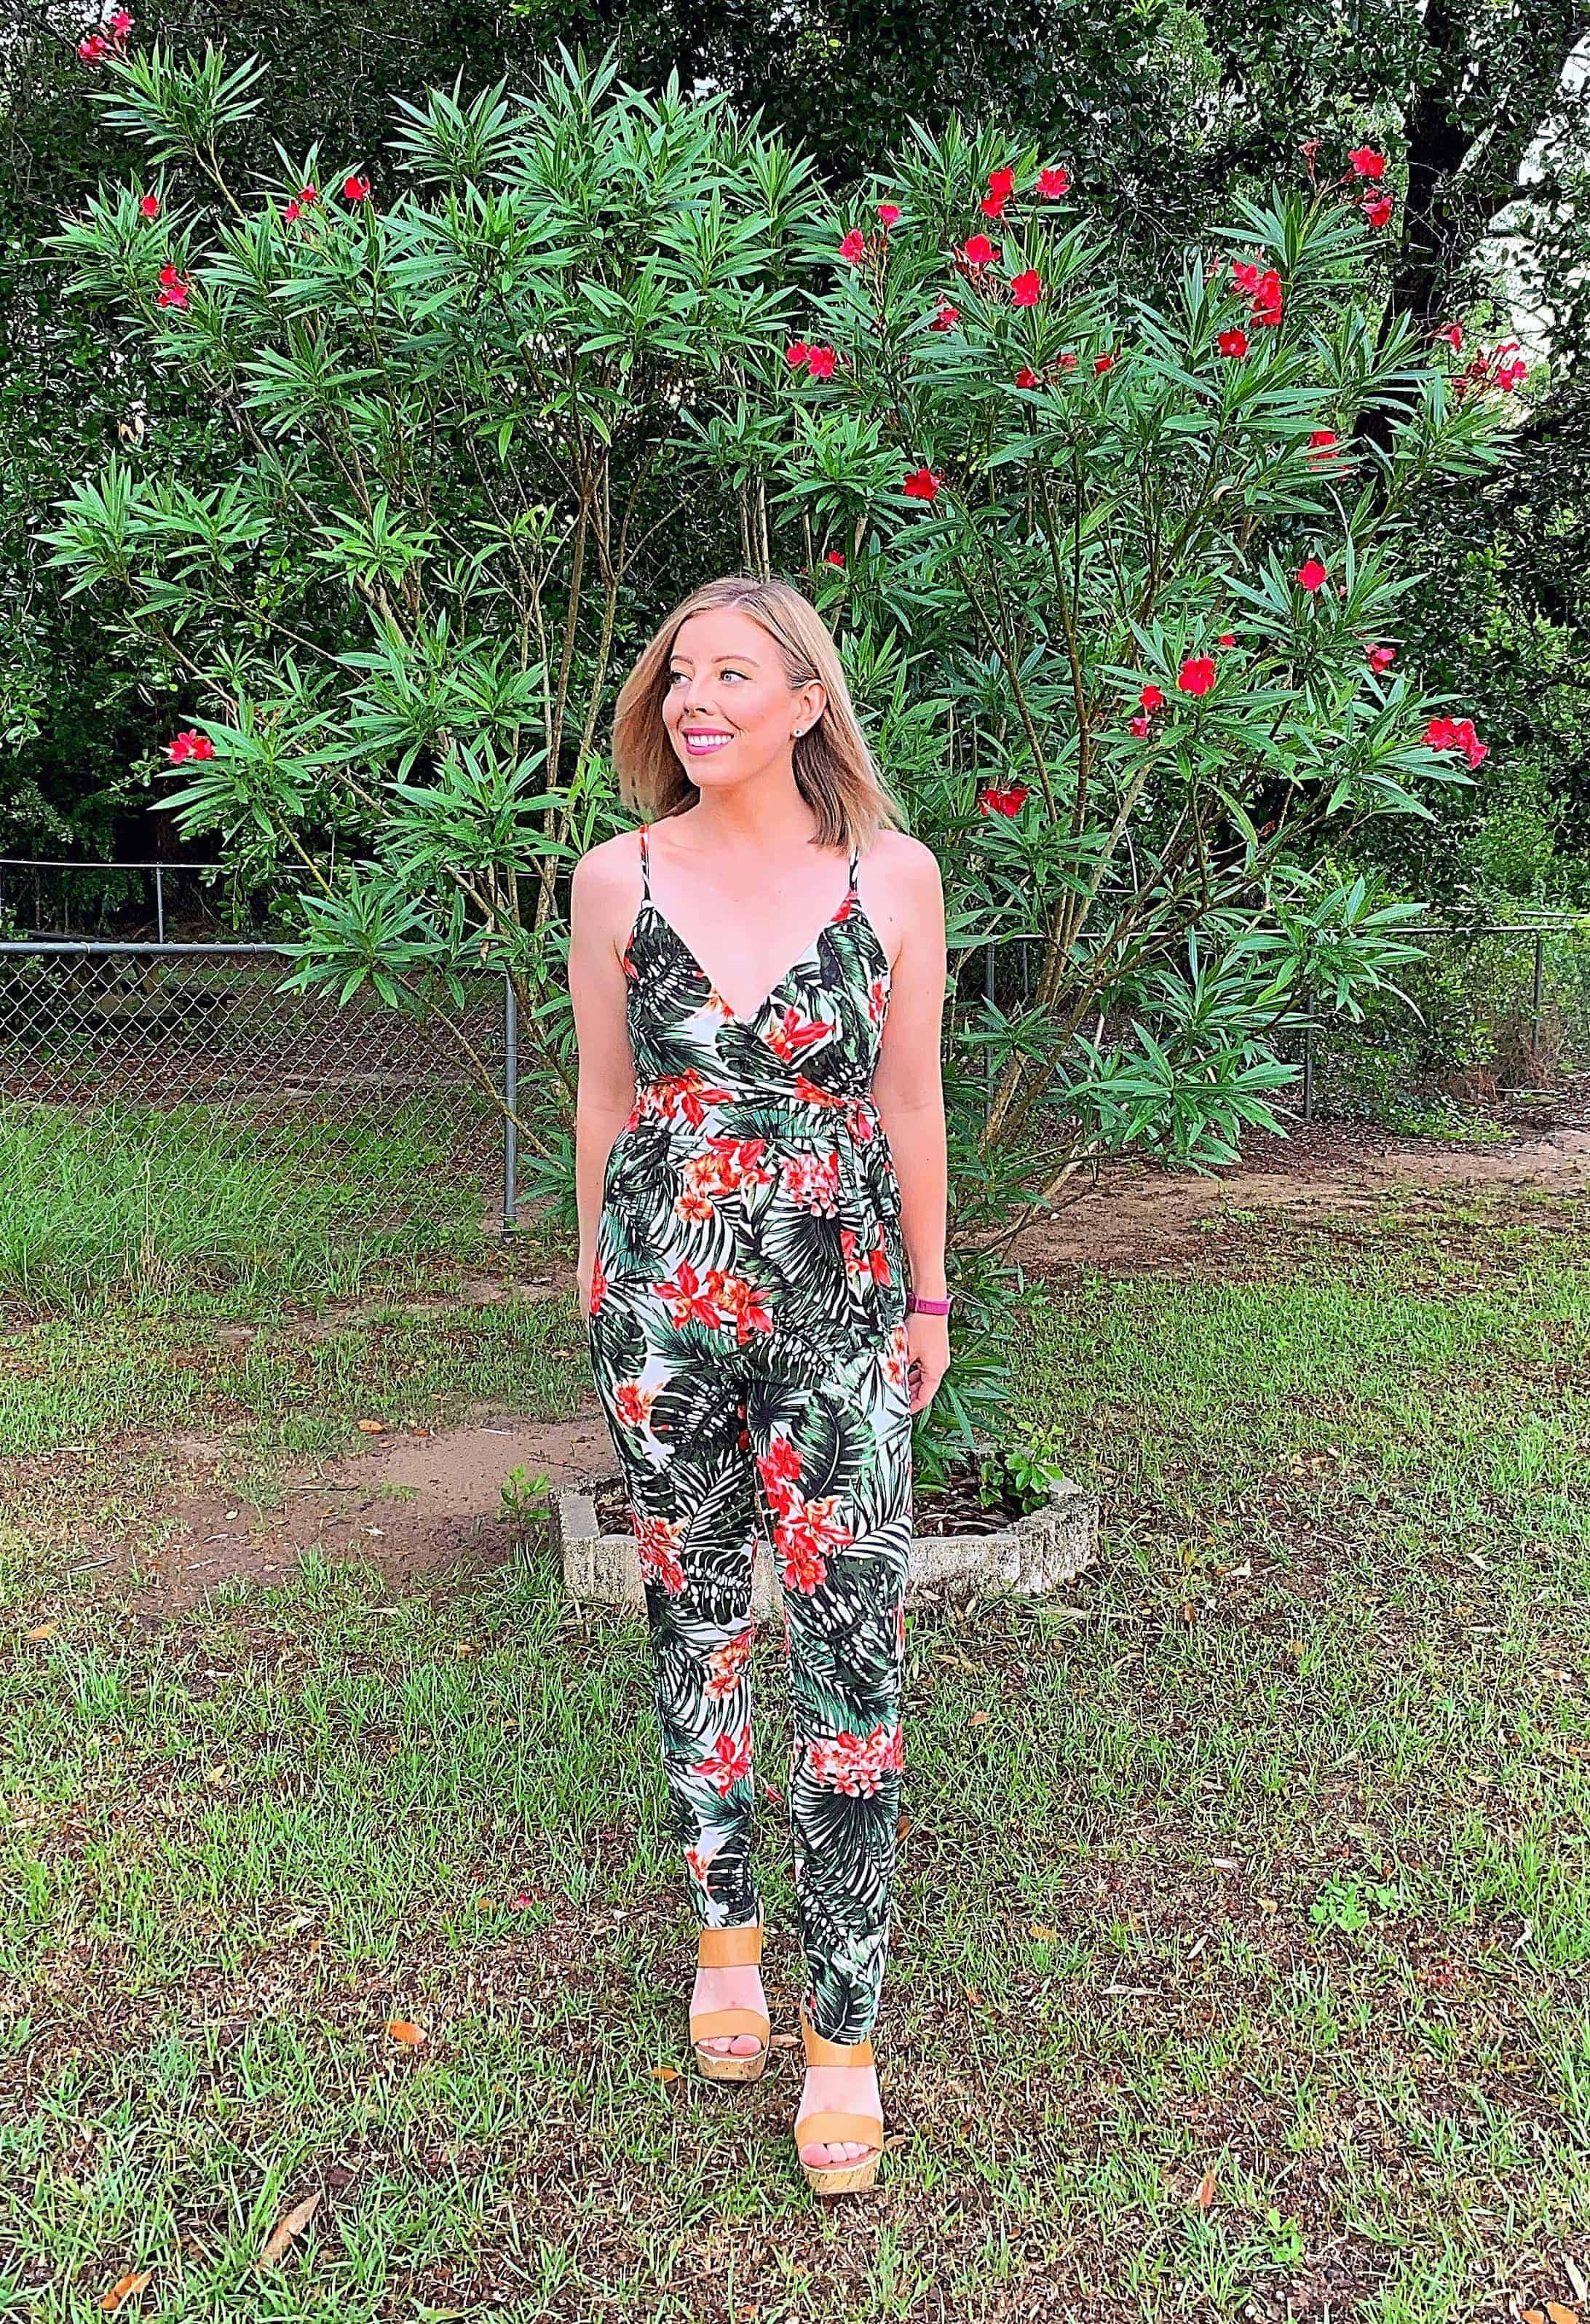 Sharing two cute and affordable summer vacation outfits from Bealls Outlet perfect for wearing on your next beach getaway! Even better they're both under $15! #ad #beallsoutlet #vacationoutfits #summeroutfits